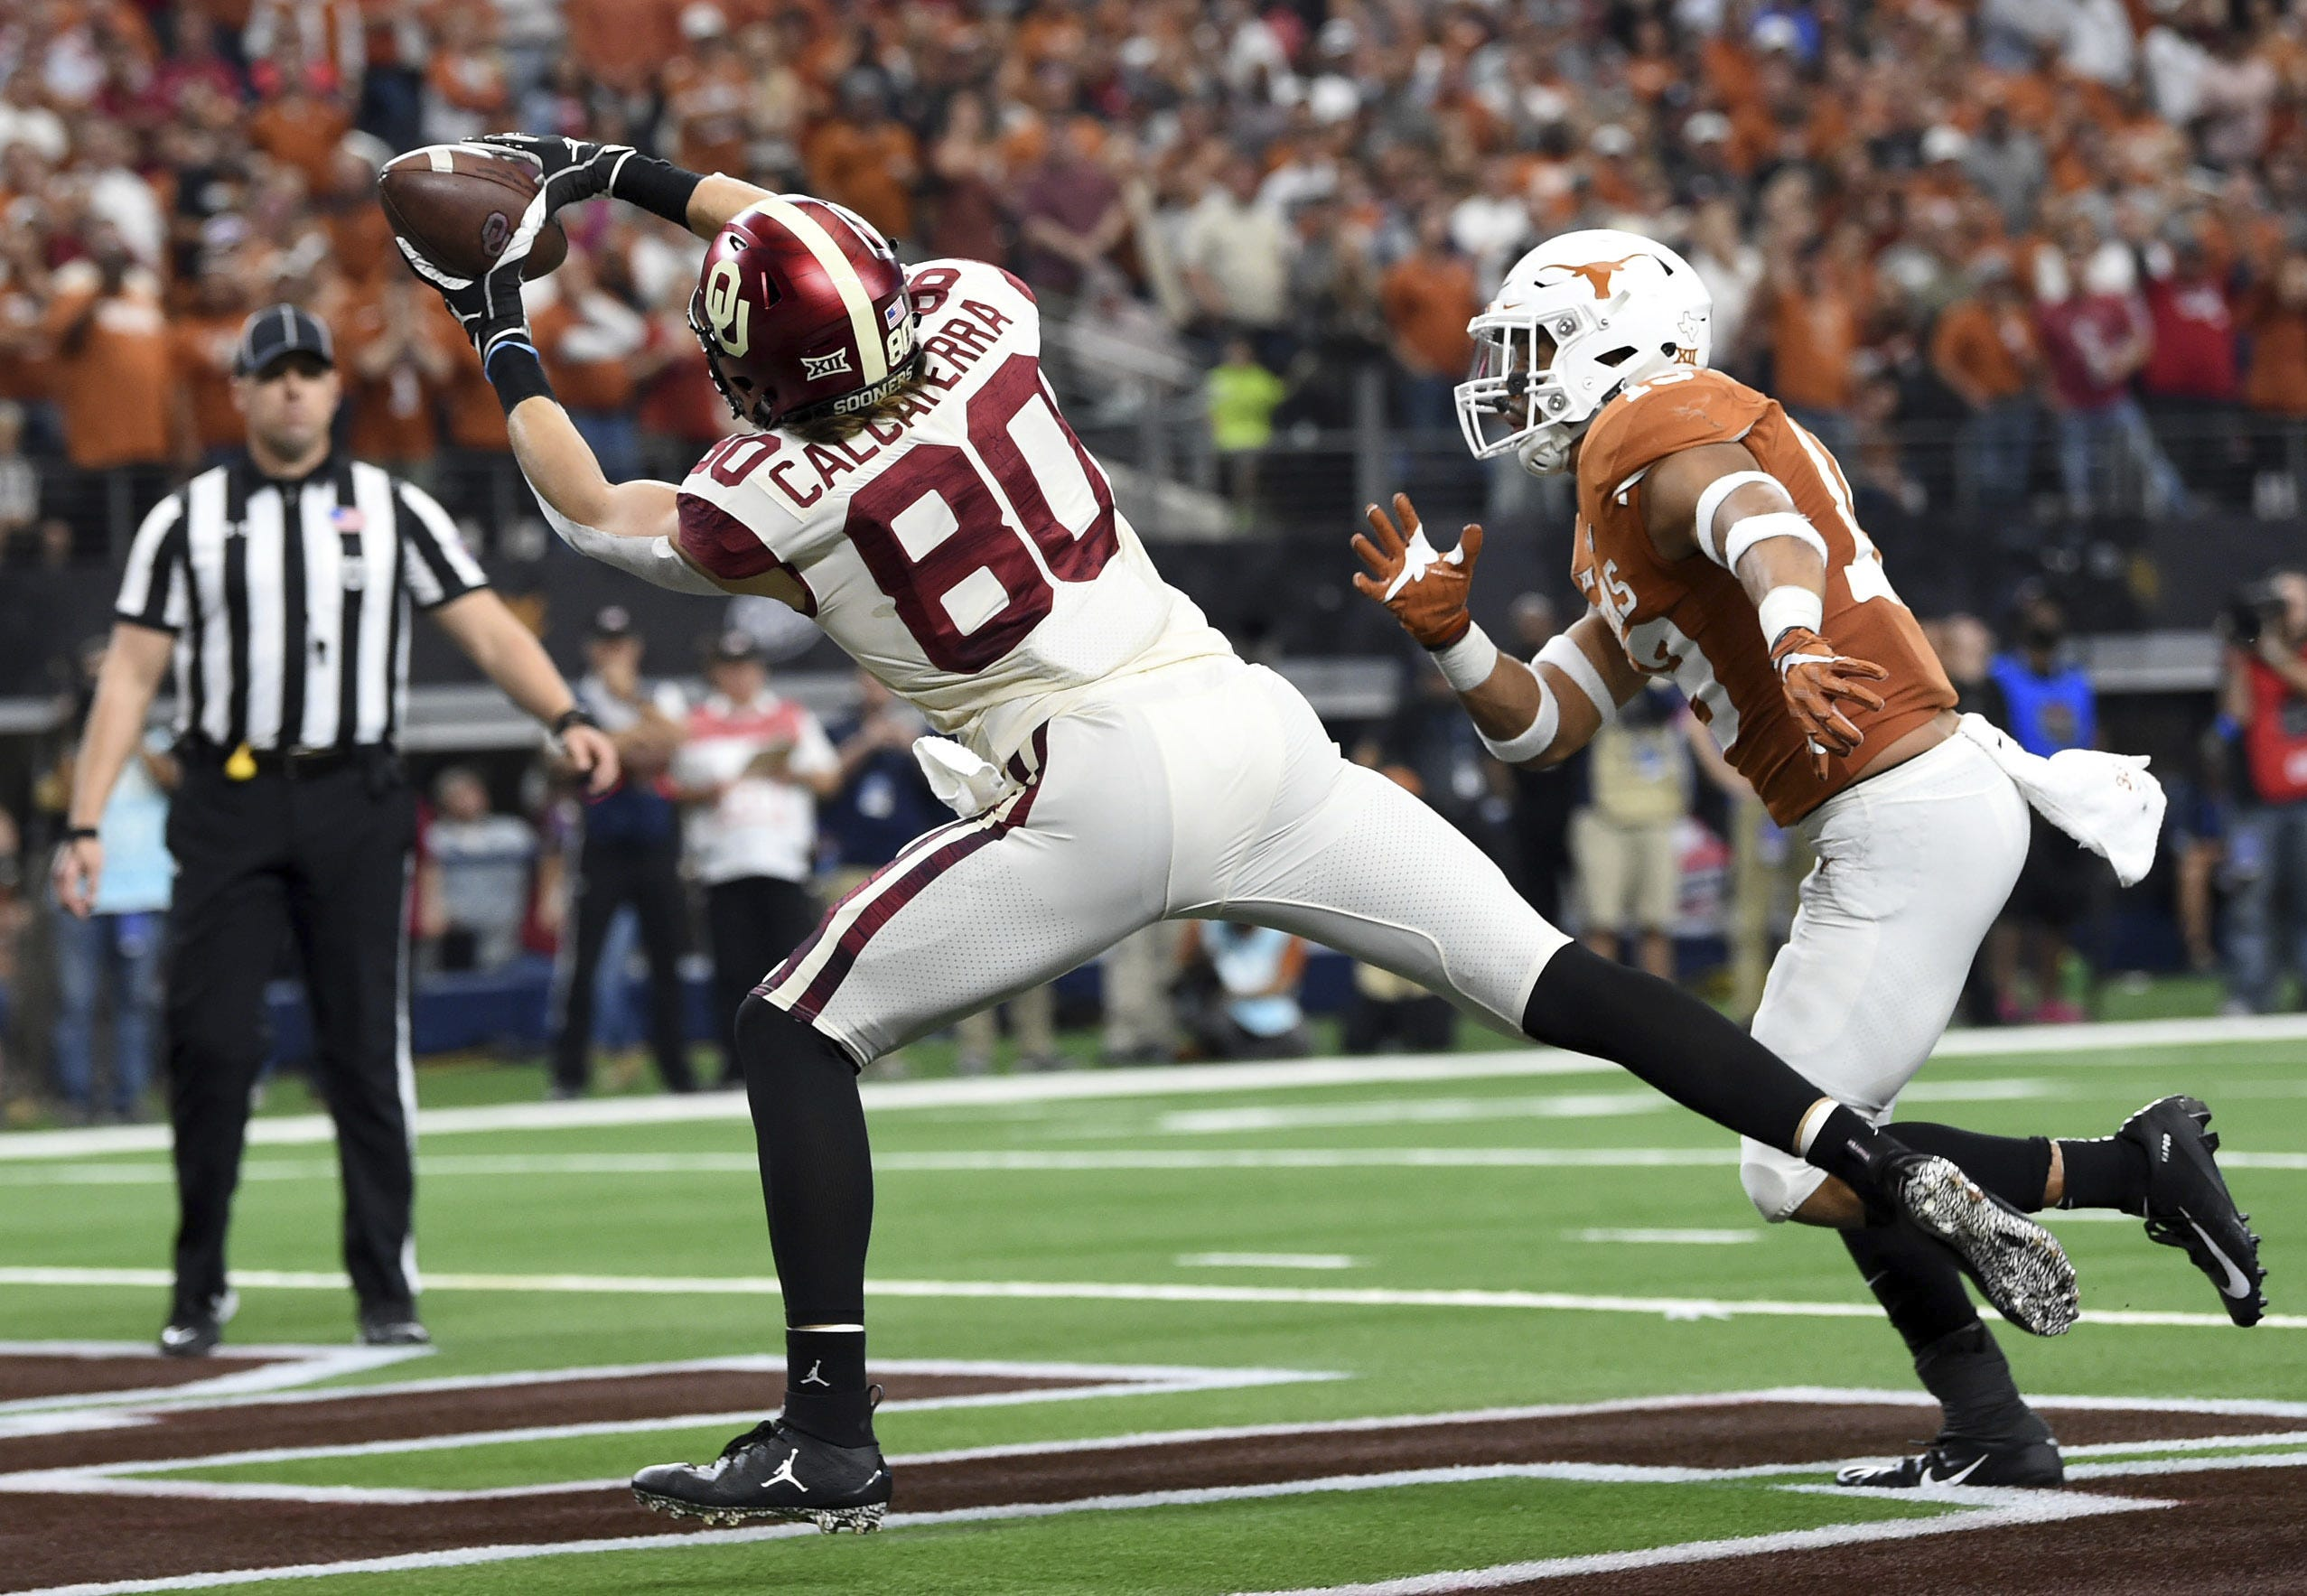 OU football: Kickoff time announced for Big 12 …